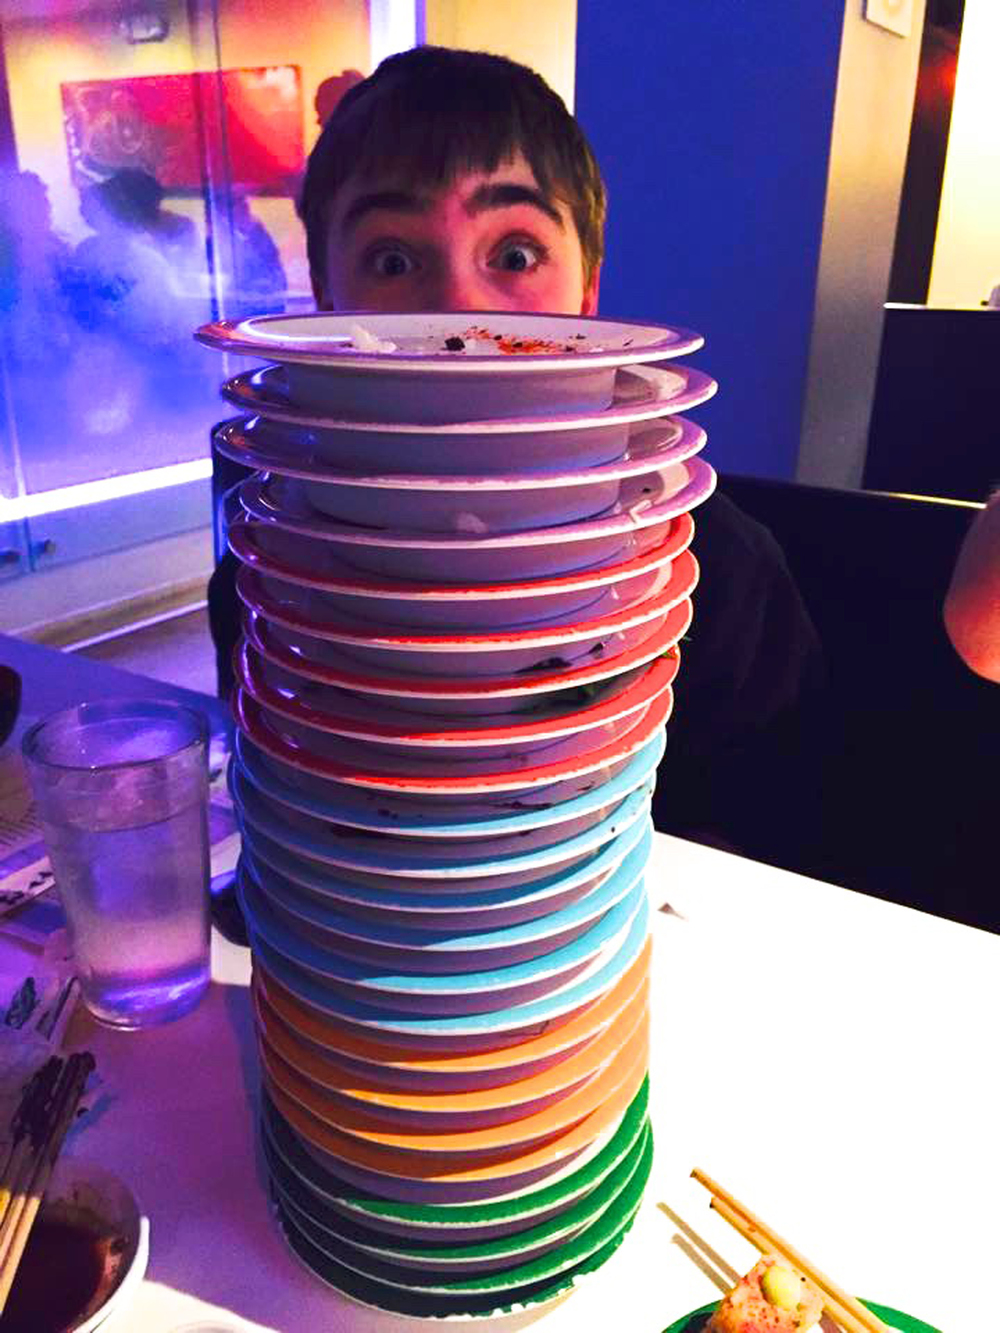 2015.03.20 Great pic of young customer with plates.jpg